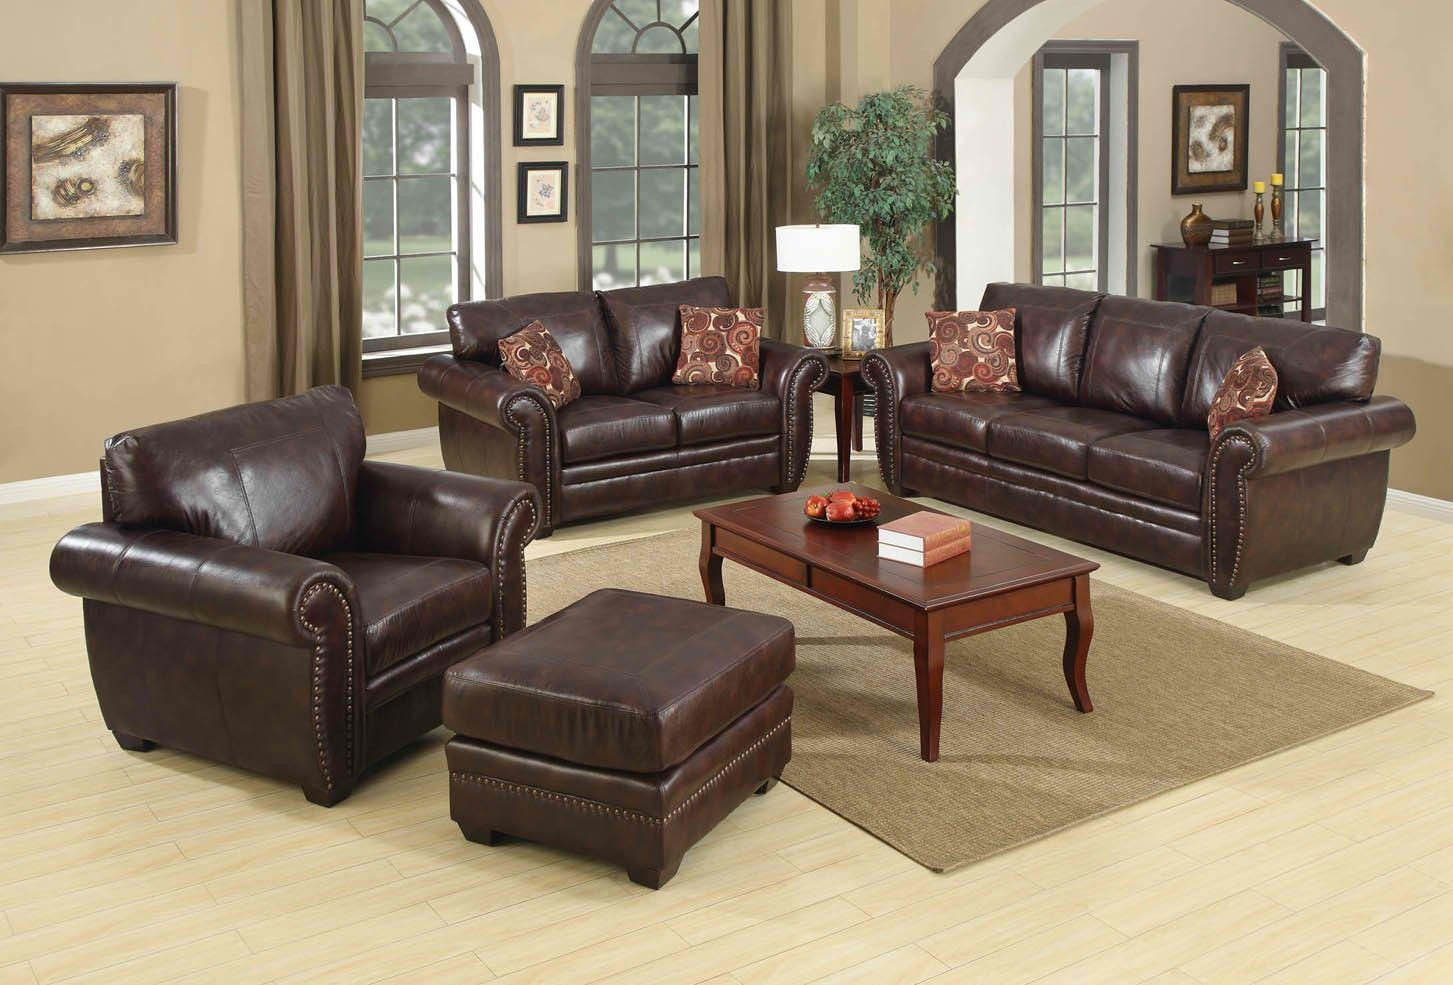 Living Room Furniture Sofas Wall Colors For Brown Furniture List 17 Ideas In Best Wall Color